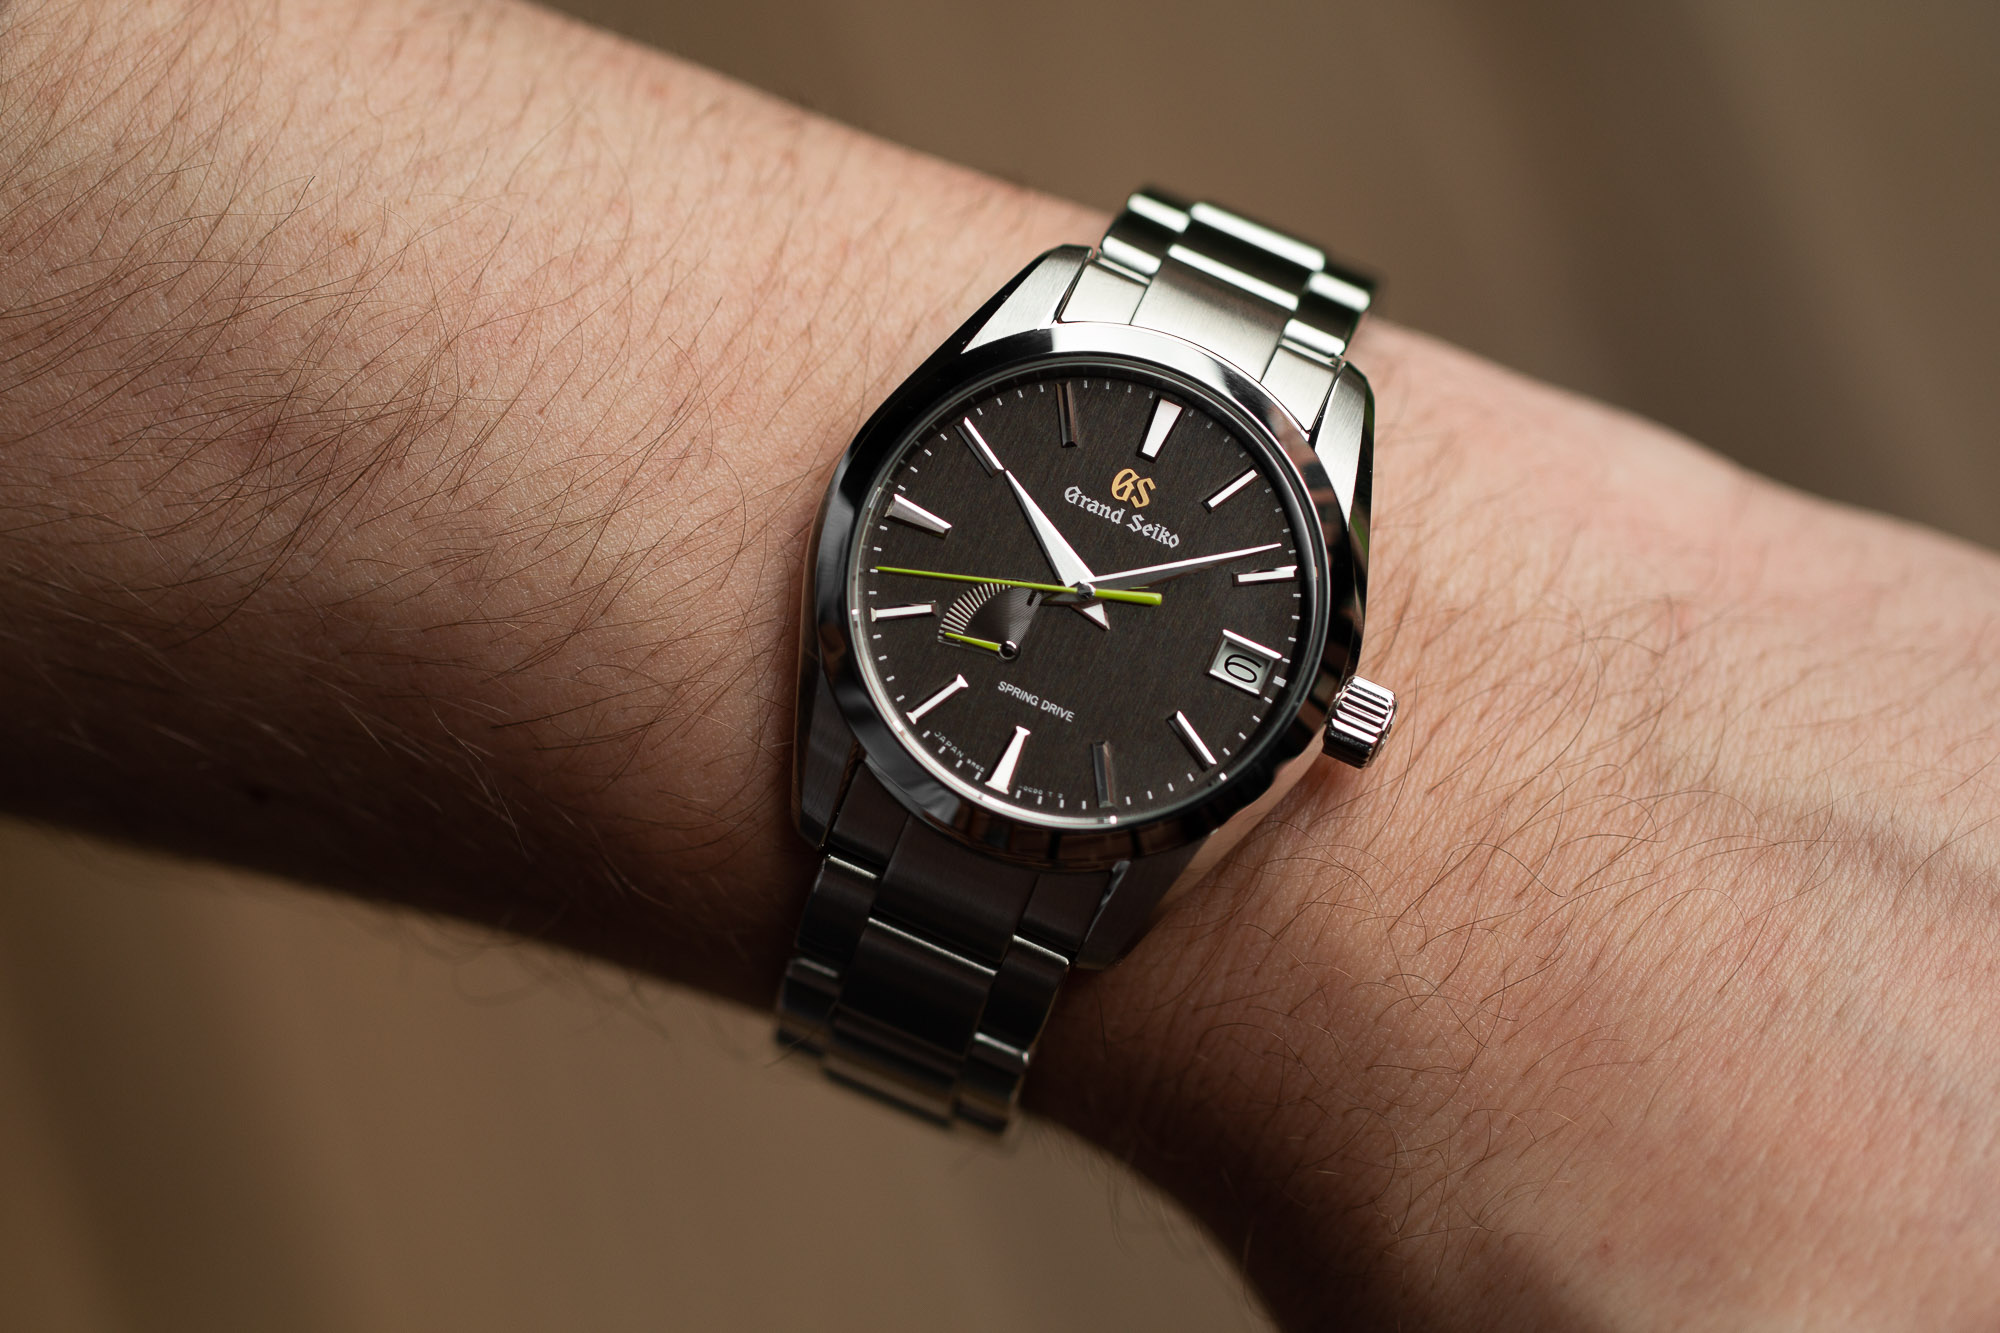 SBGA429 wristwatch on wrist.